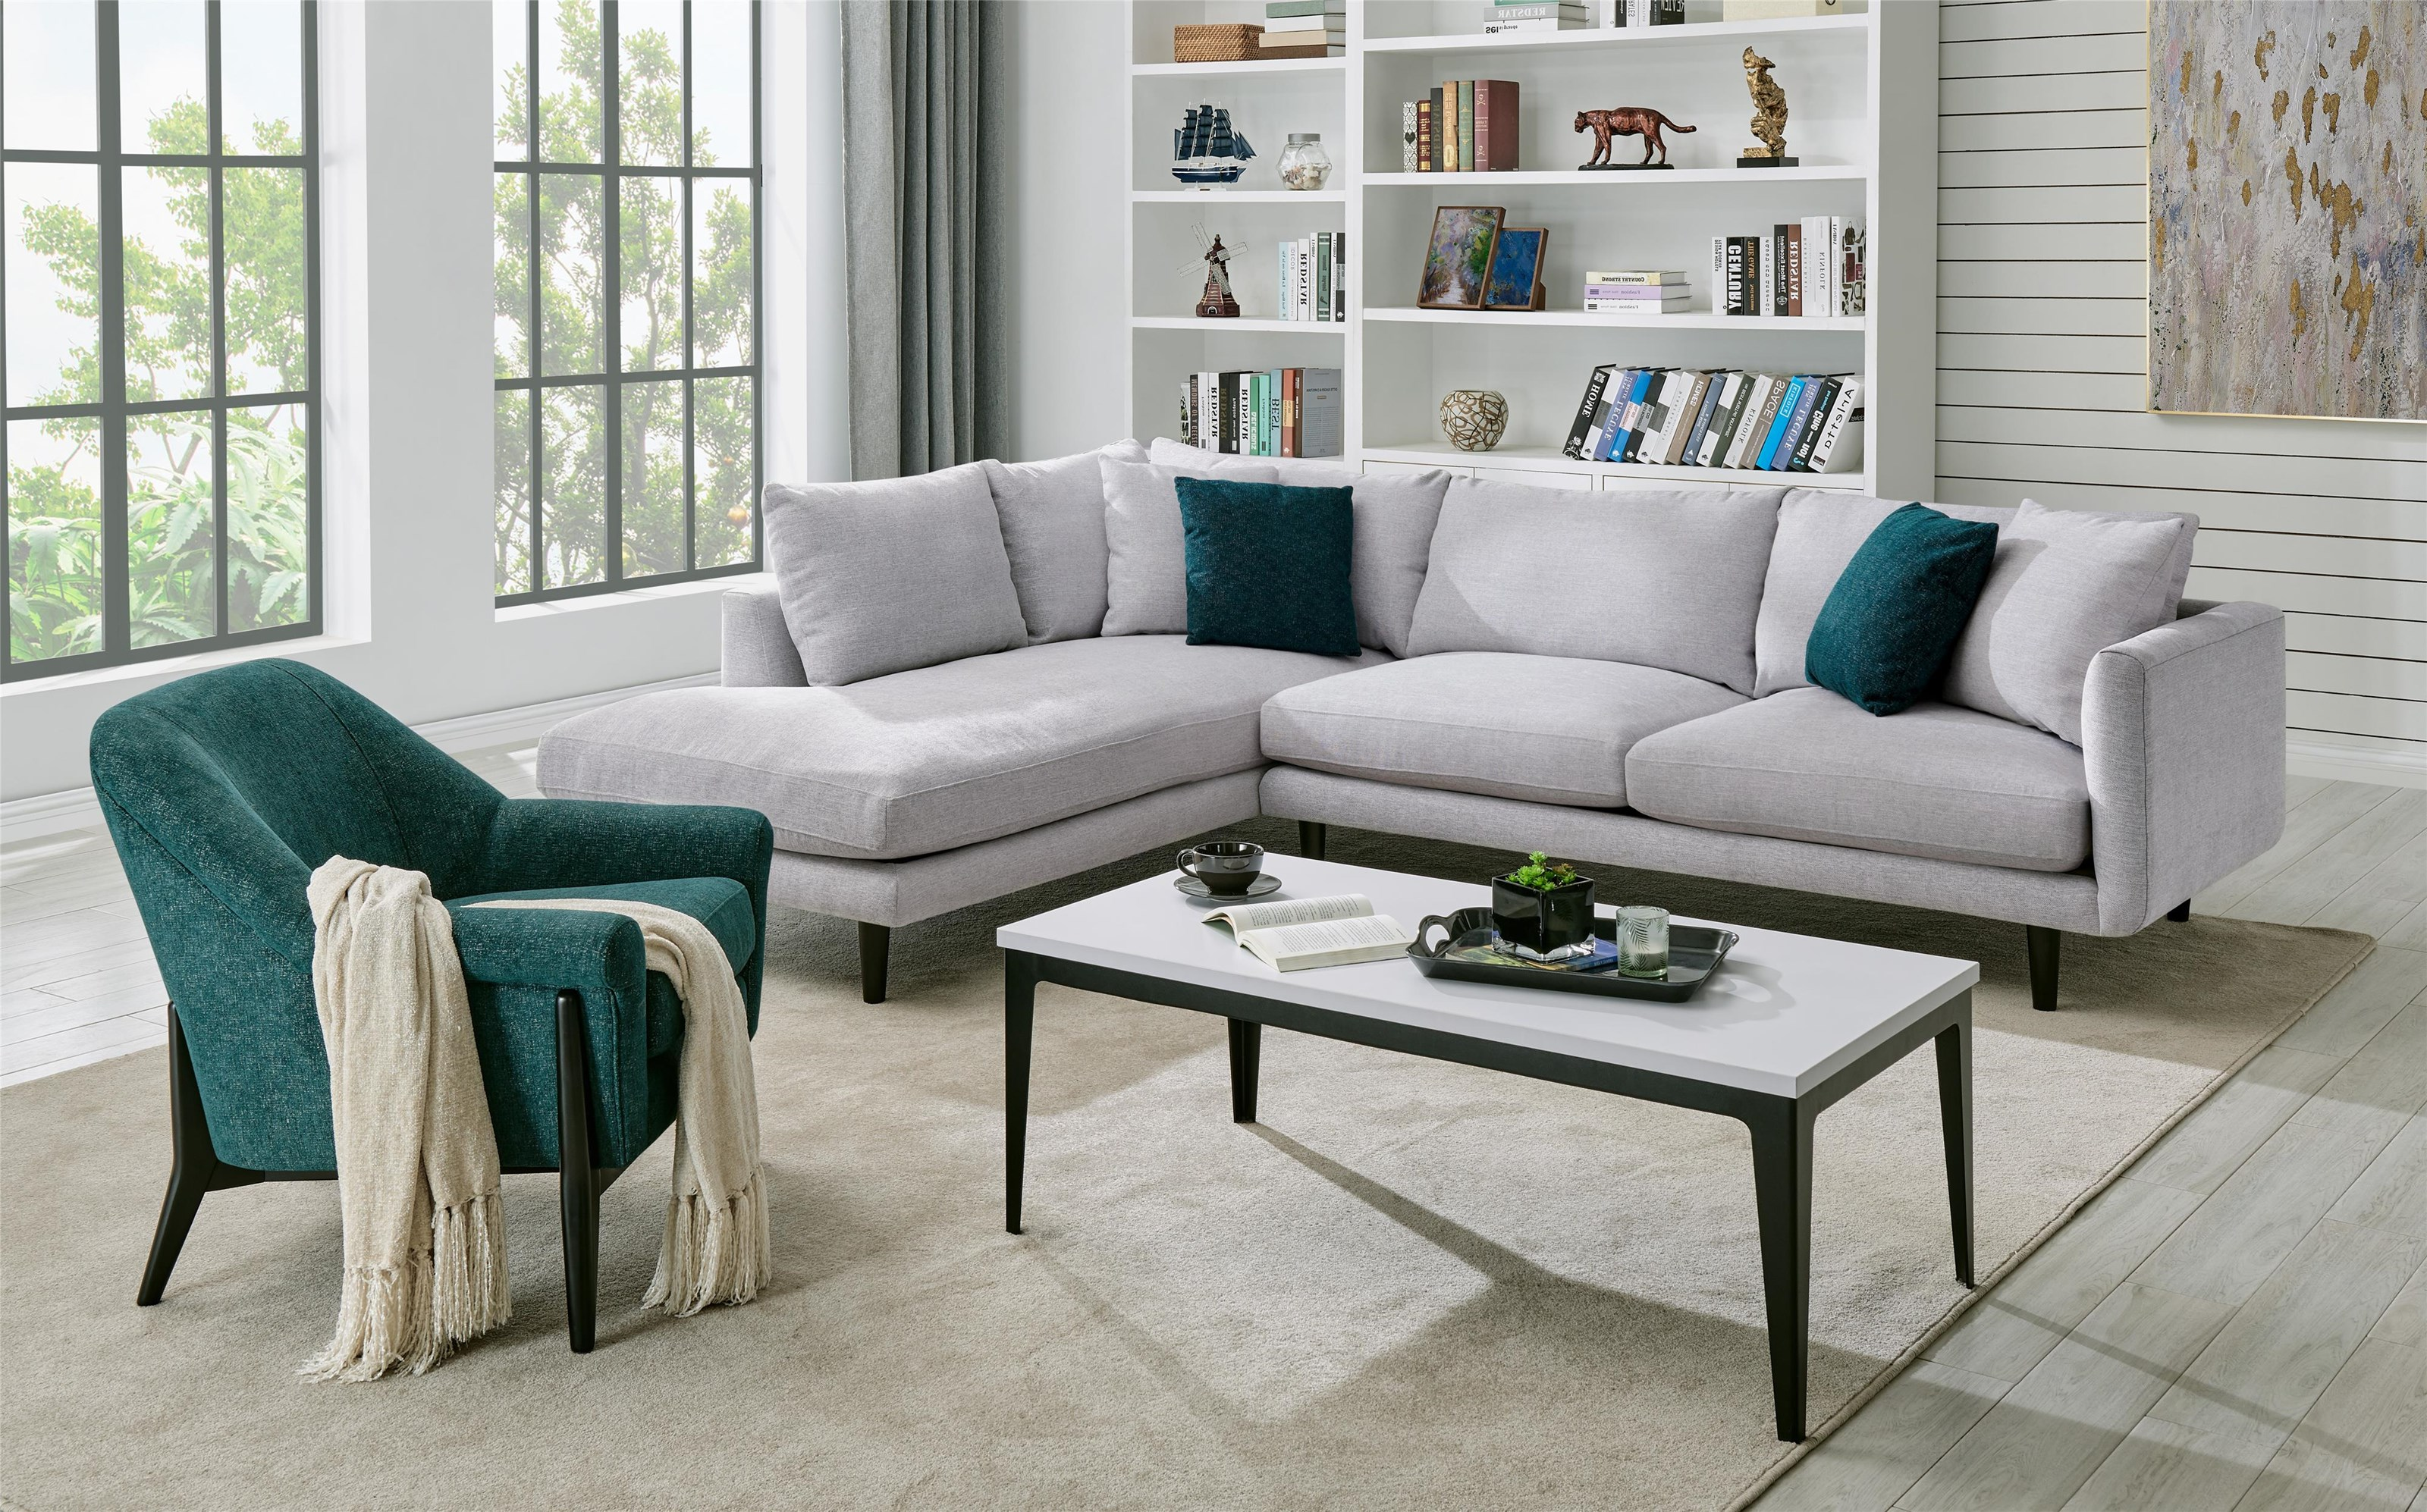 2252 2252 DD 2 PC Sectional in Elliot Dove by Lewis Home at Stoney Creek Furniture